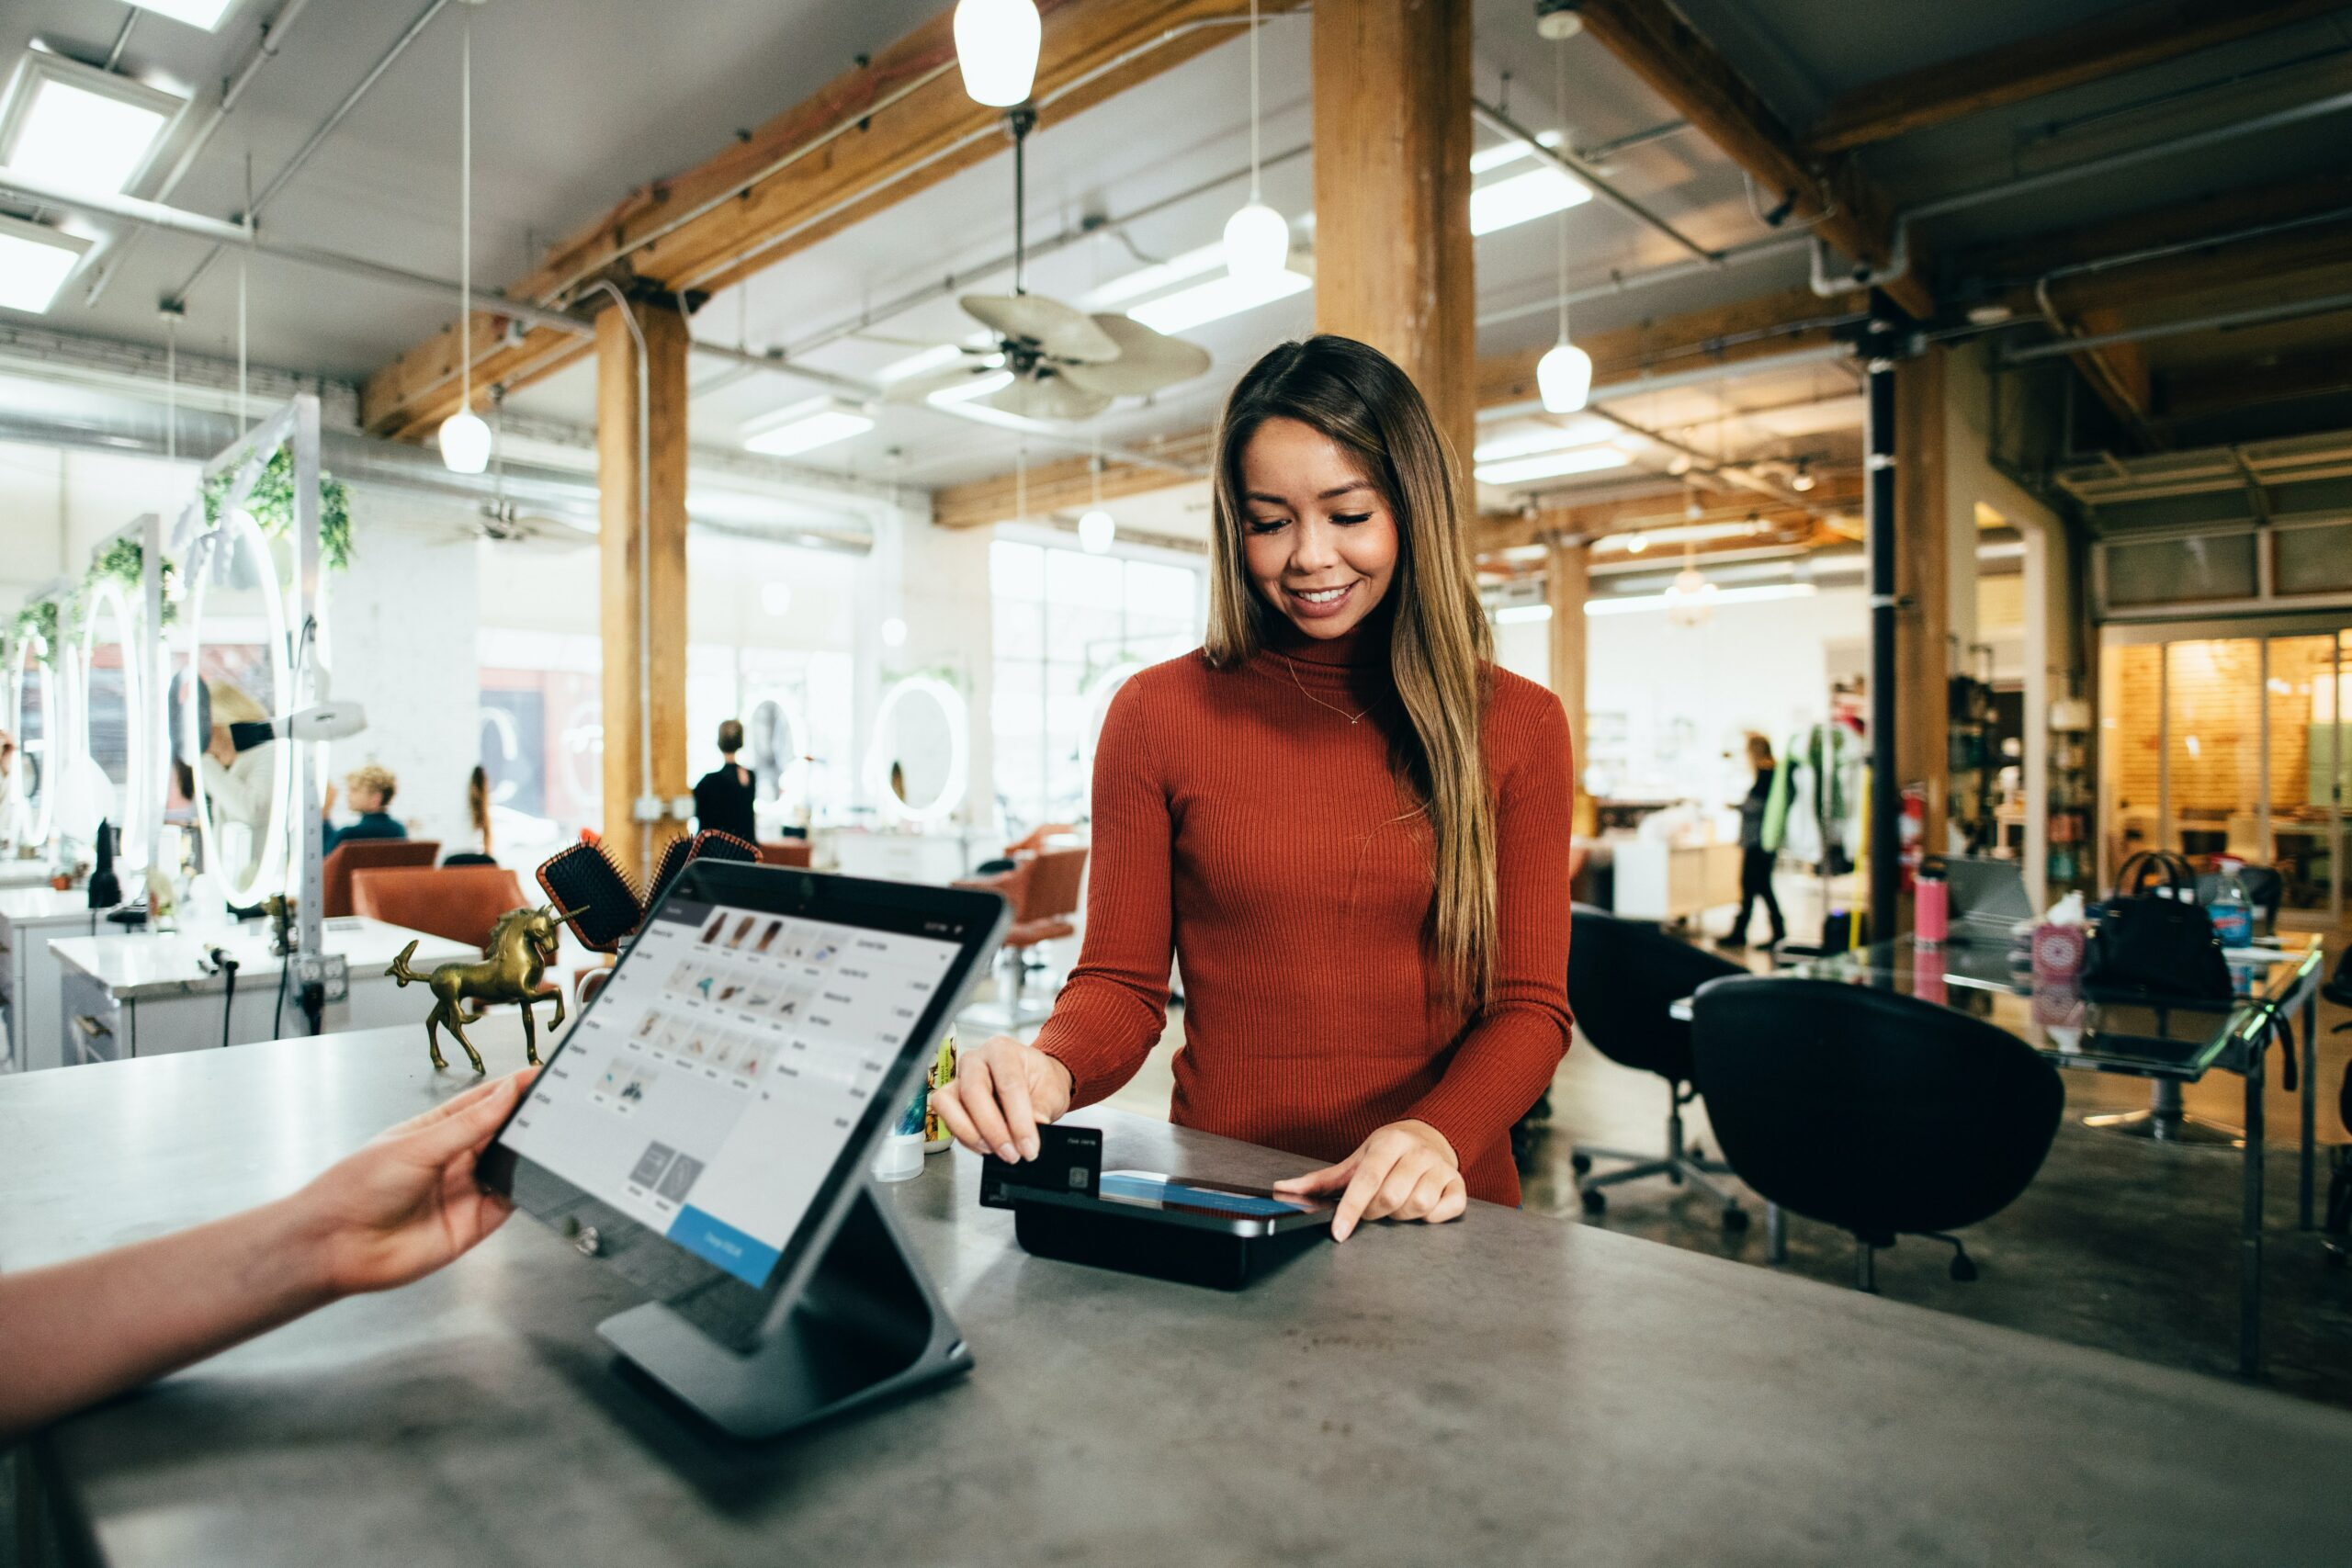 How to Balance Customer Focus and Retail Maintenance In Your Store